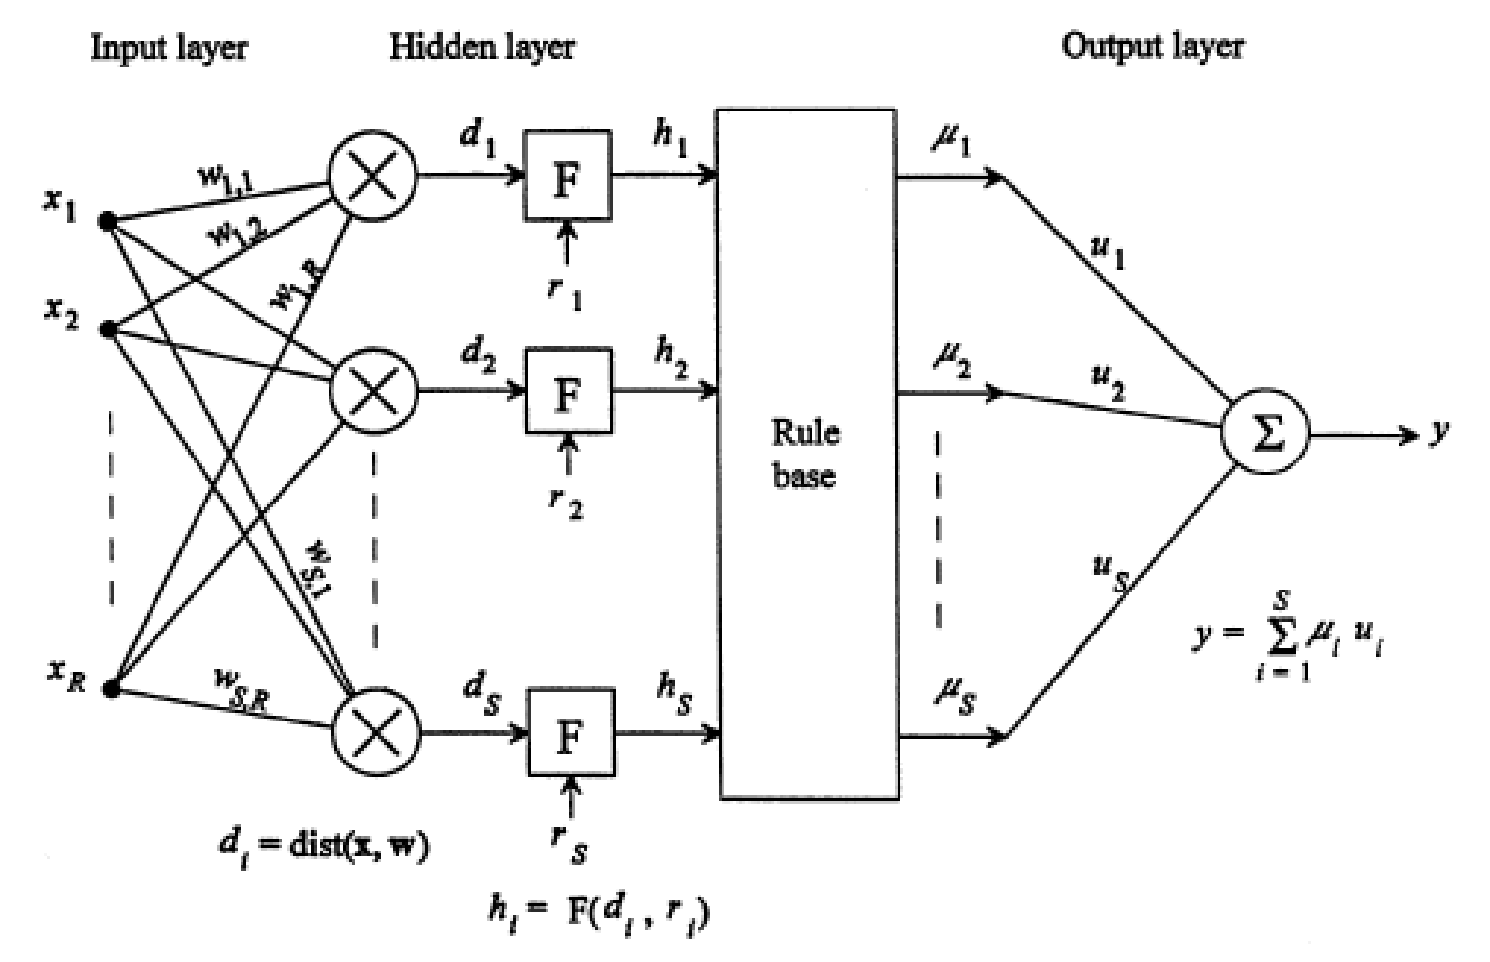 Figure 3: The structure of the fast classification neural network, from Tang and Kak (2002).